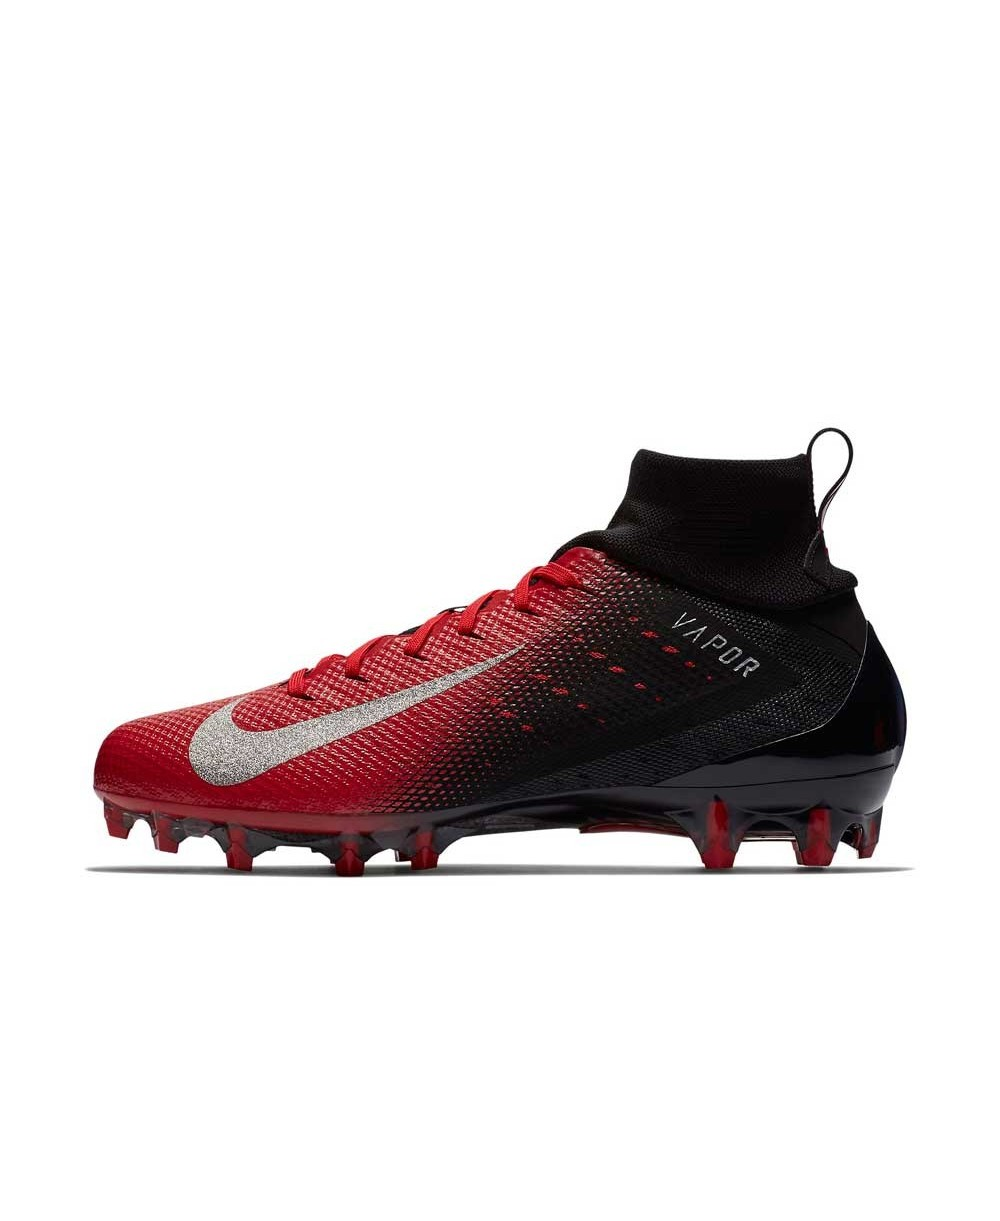 a21ed237484c9 Nike - American Football Cleats for men, model Vapor Untouchable 3 Pro,  colour Black/University Red/Total Crimson/Metallic Silver